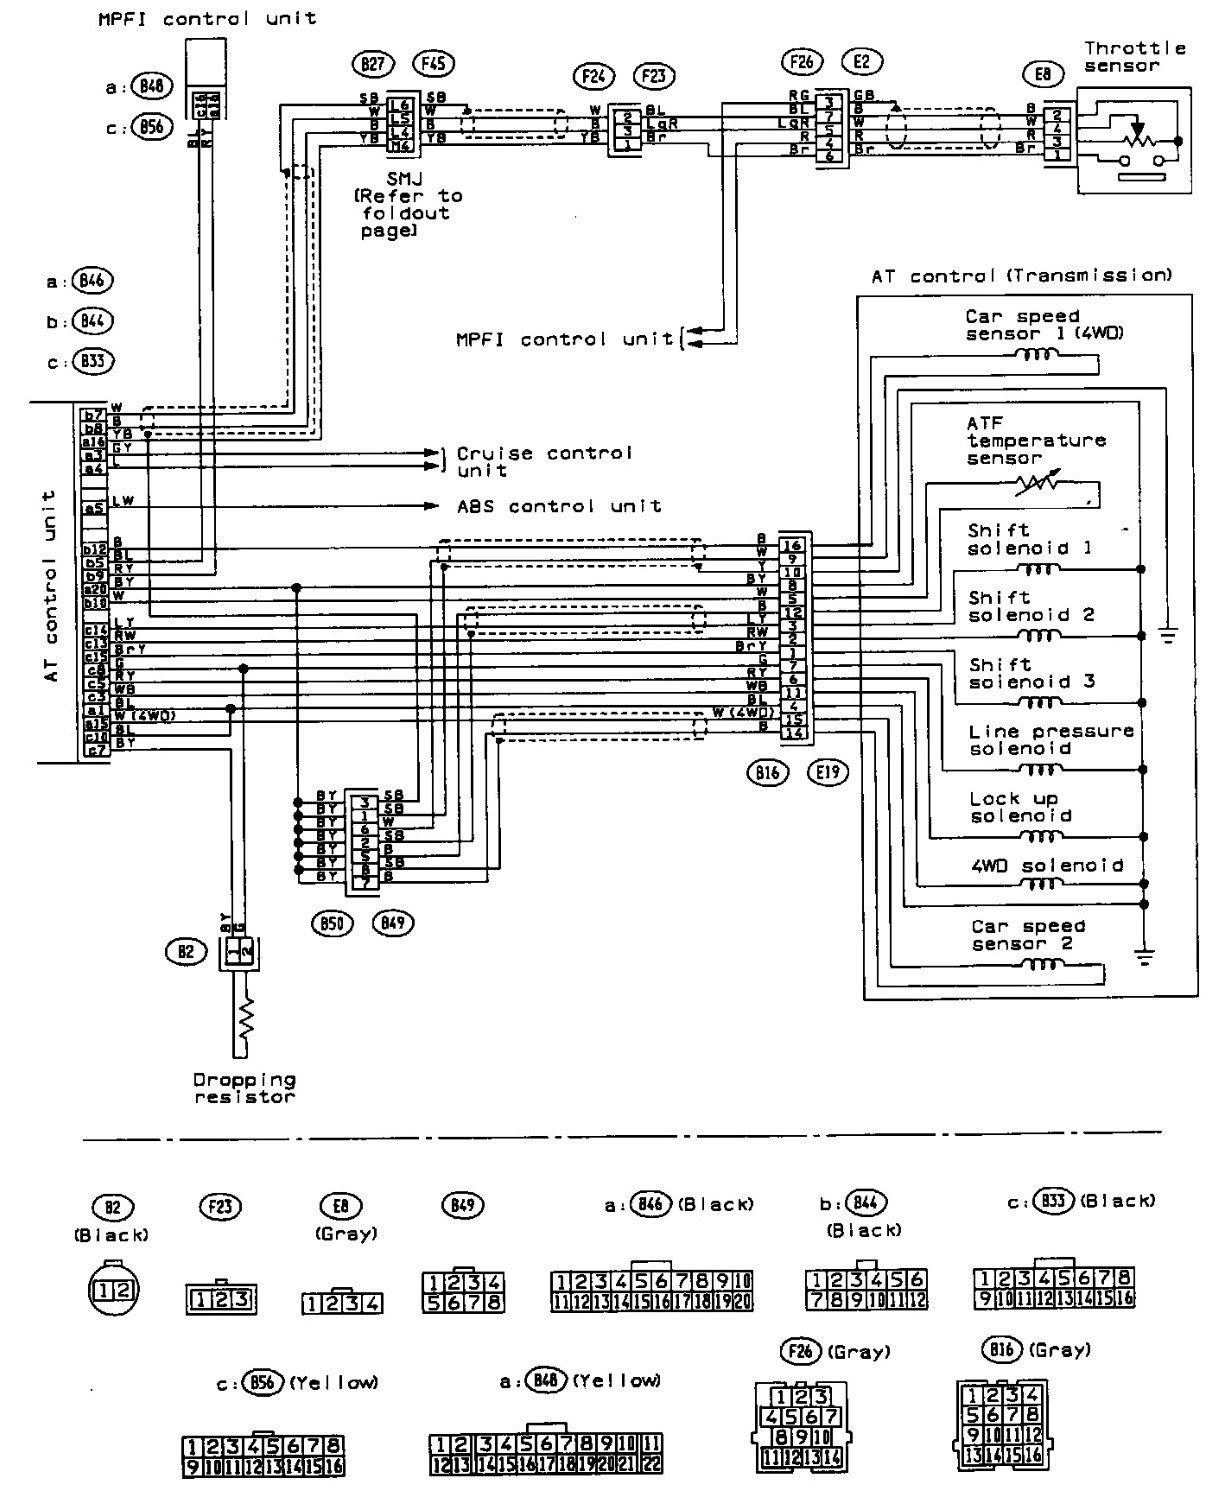 2009 Subaru Wiring Diagram Wiring Diagrams Site Arch Split A Arch Split A Rimedifitoterapici It